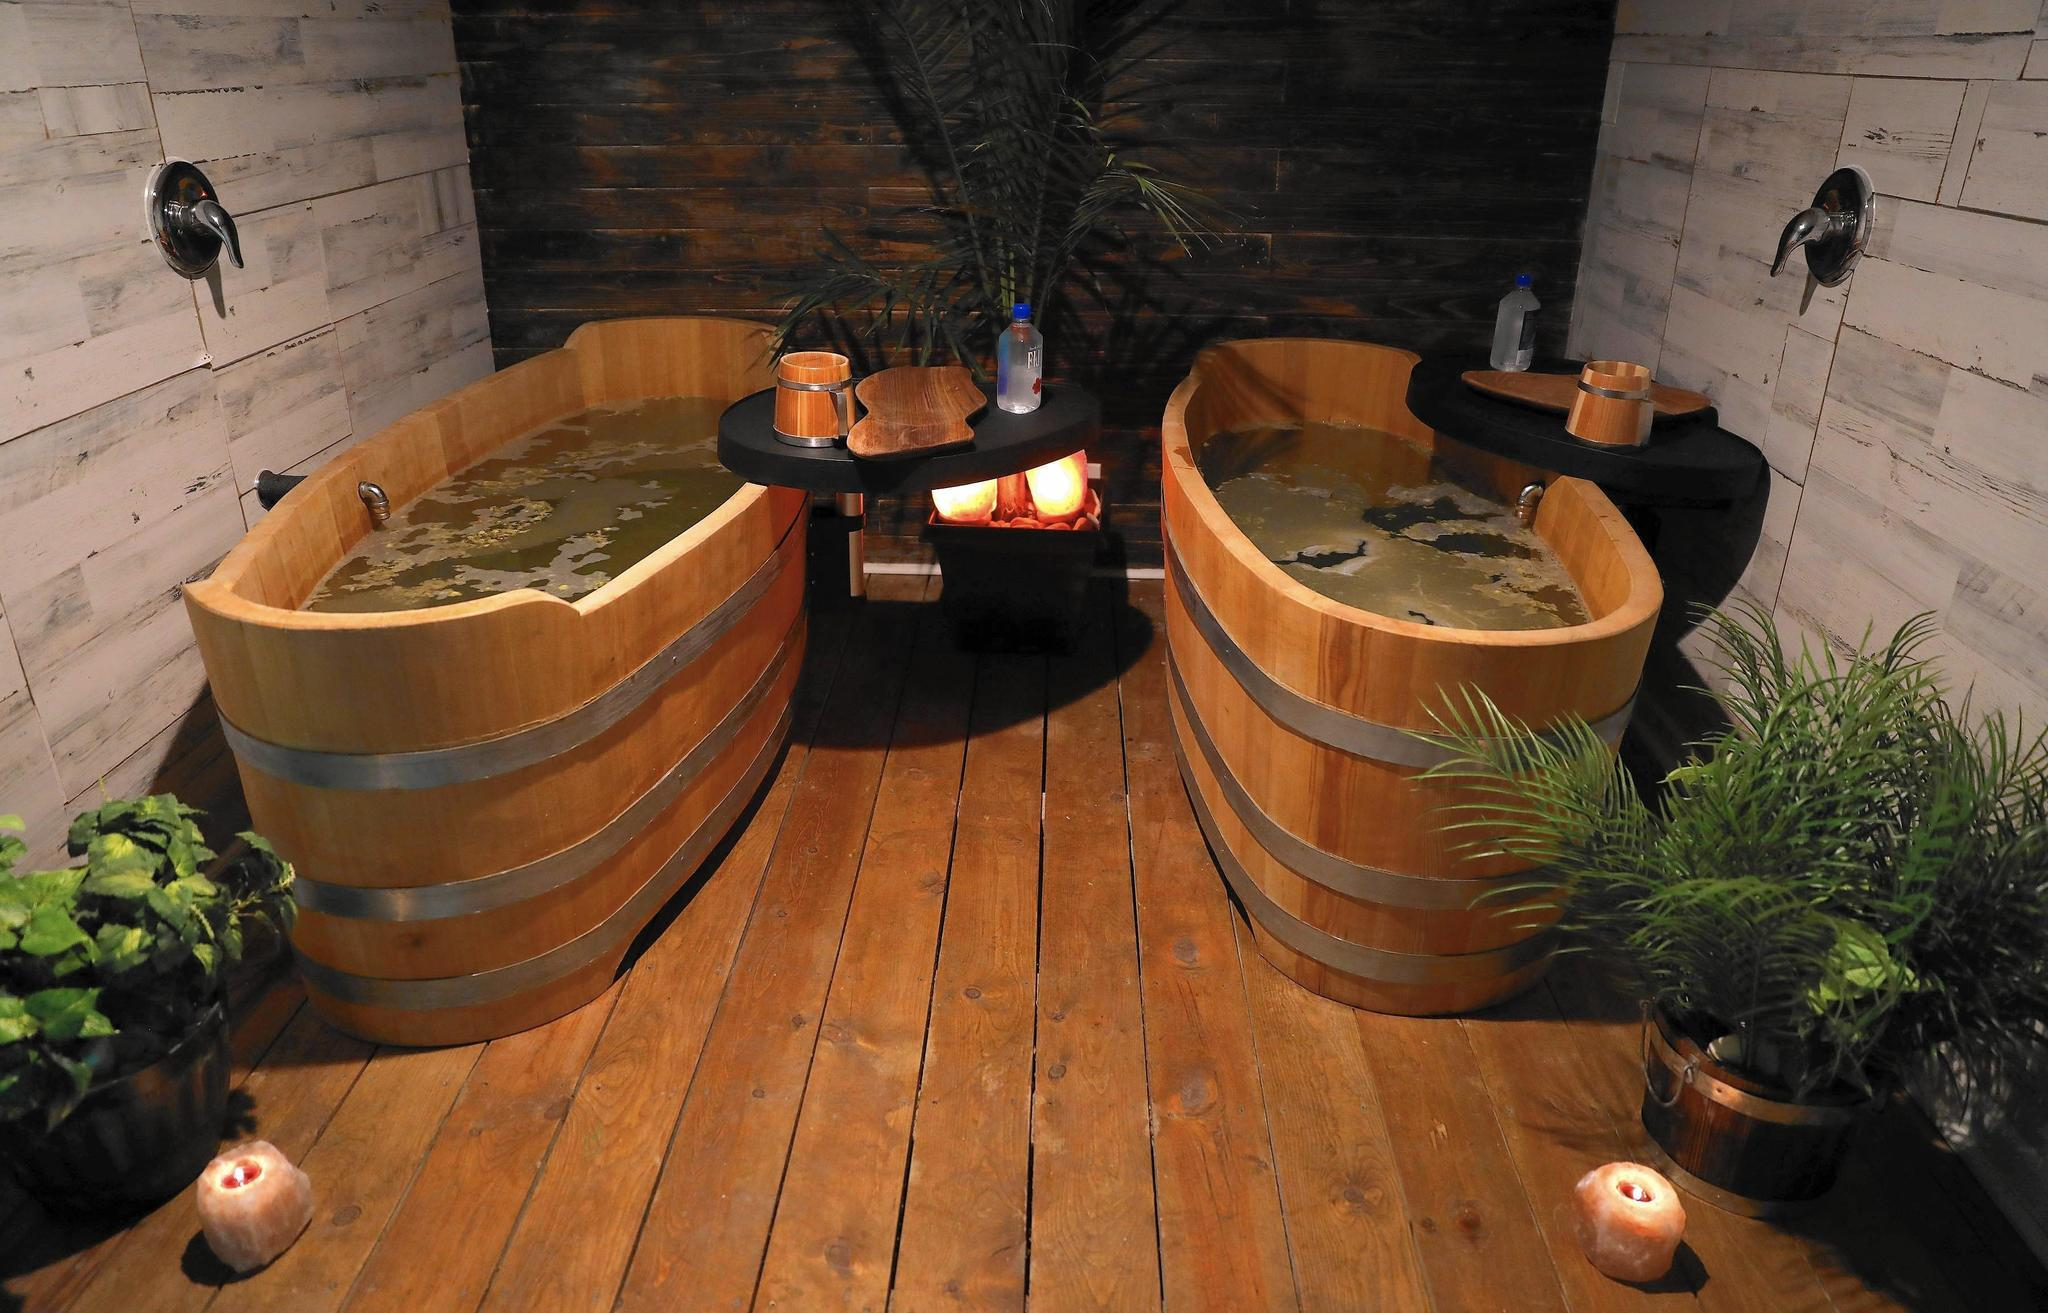 Soaking in the suds: An afternoon of brew-filled relaxation at Chicago beer spa